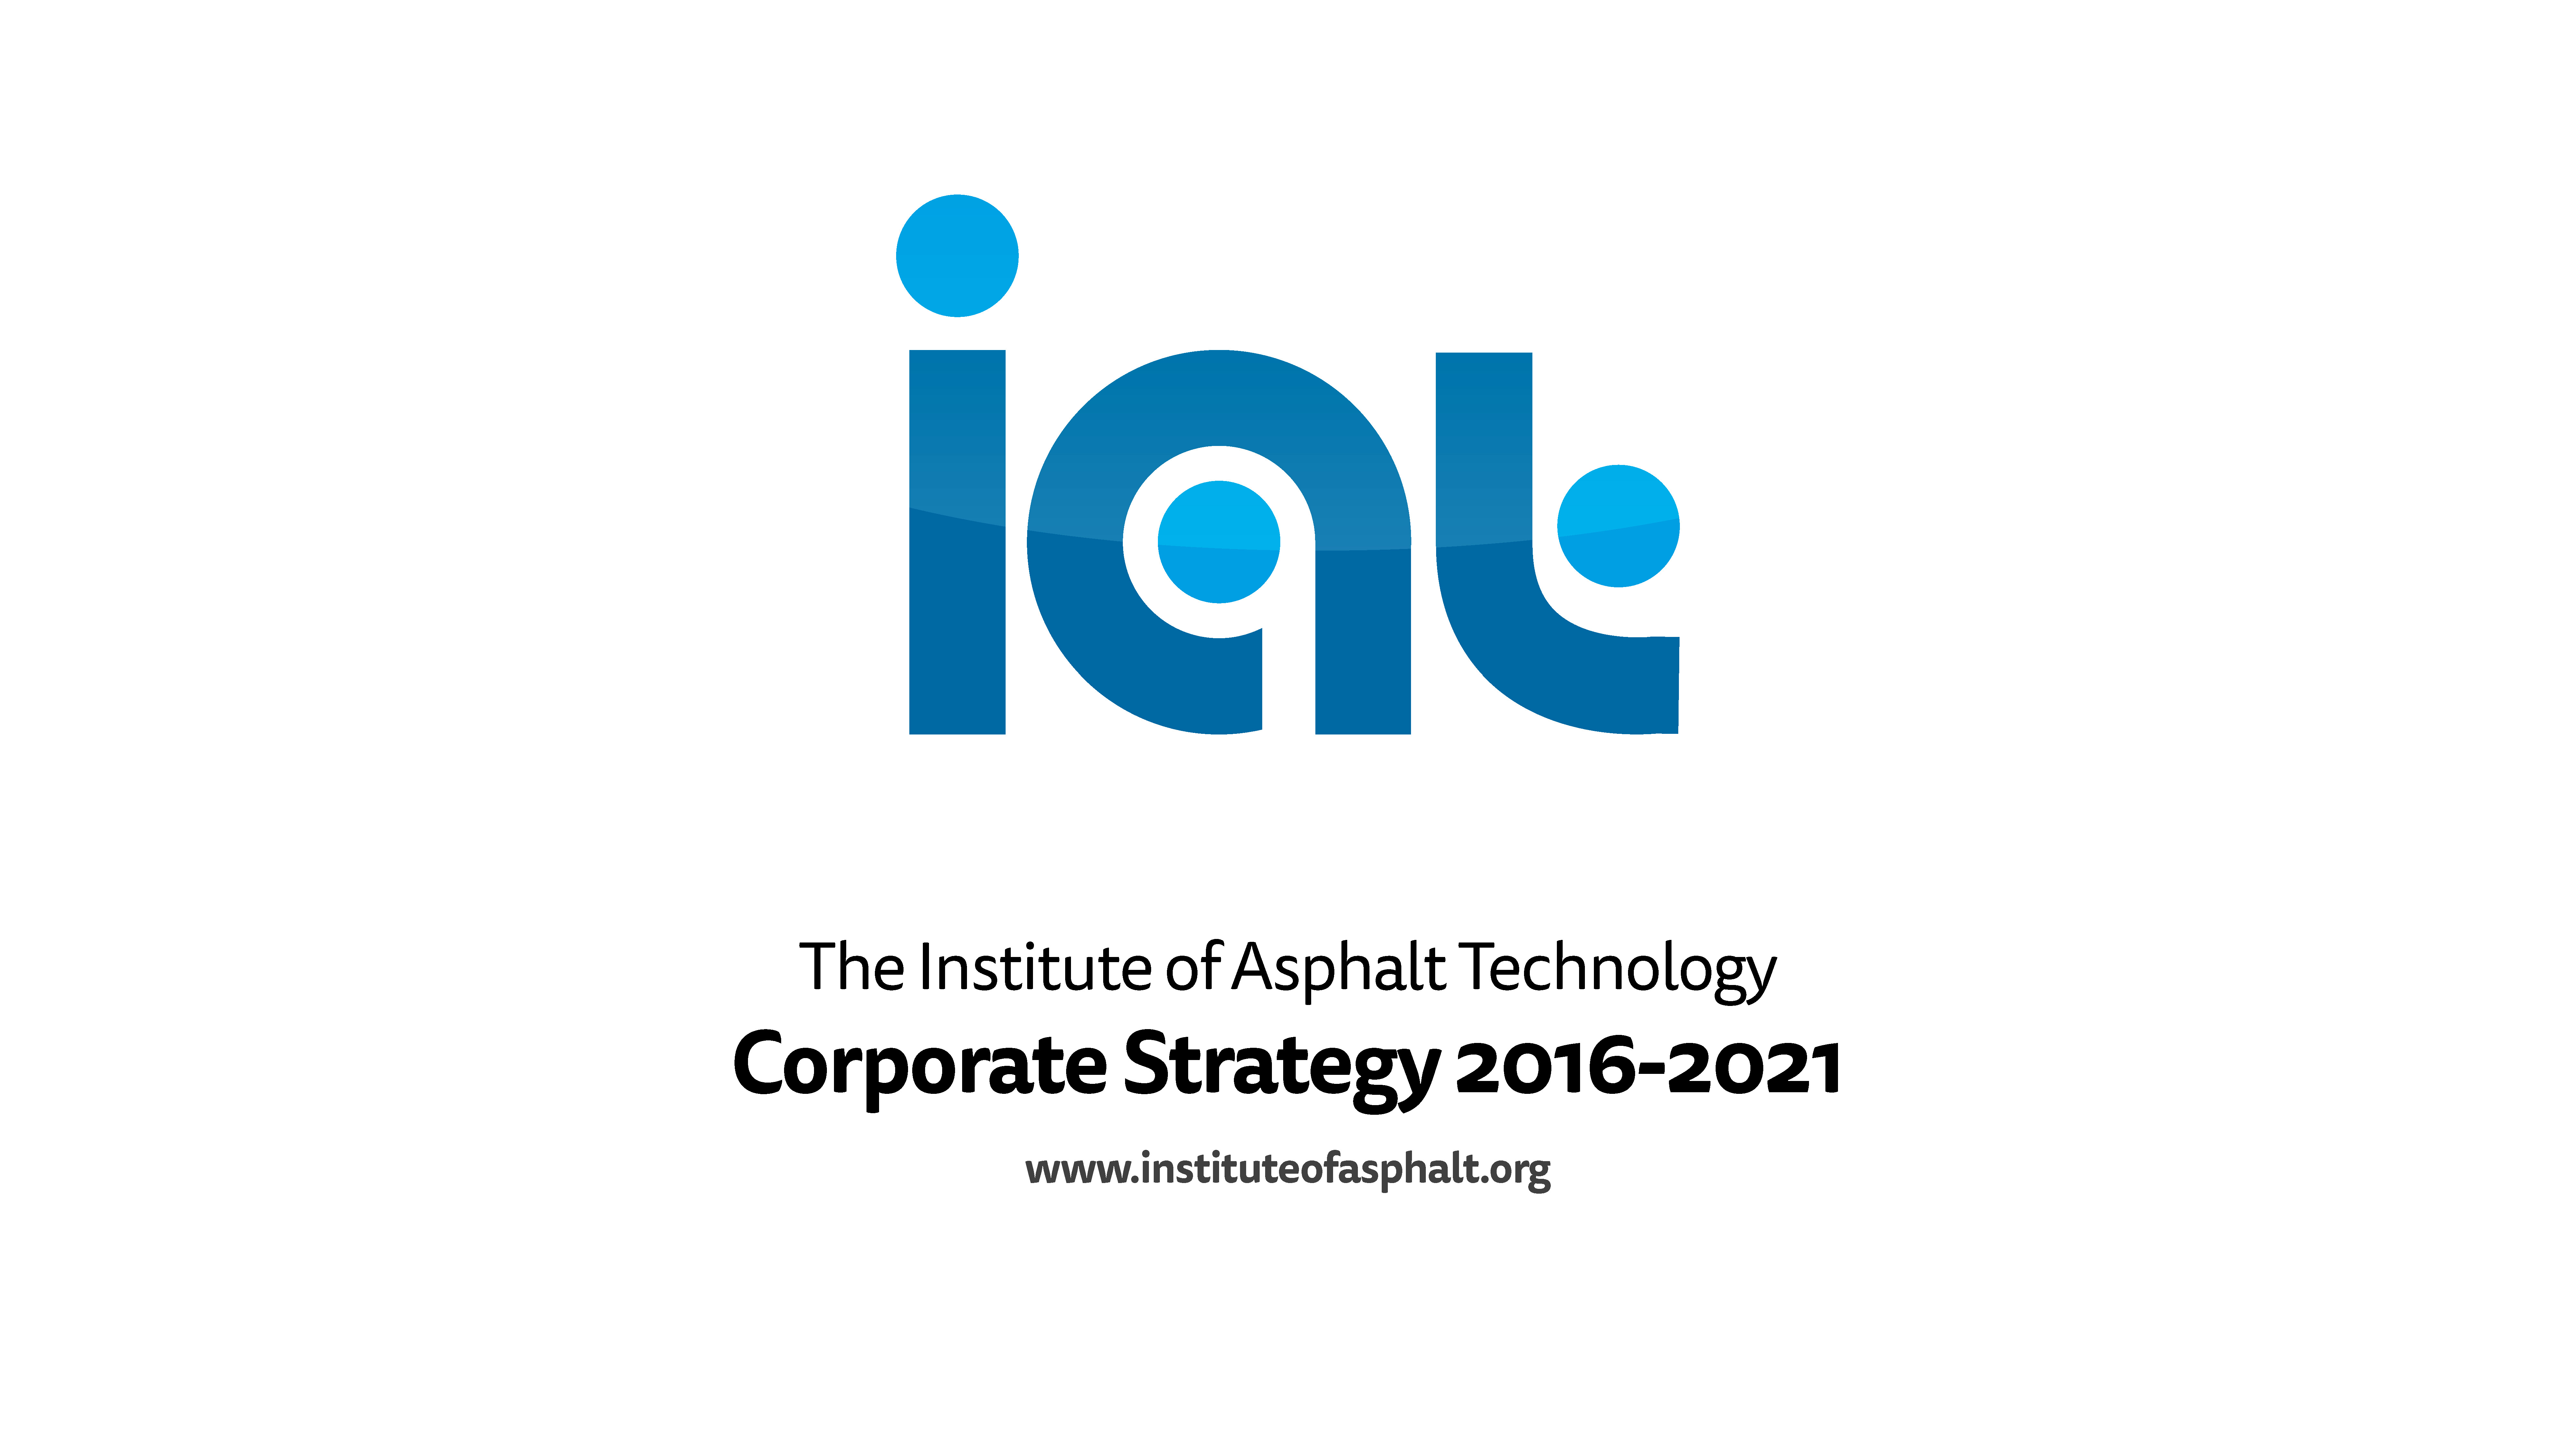 IAT Strategy, slide no. 1